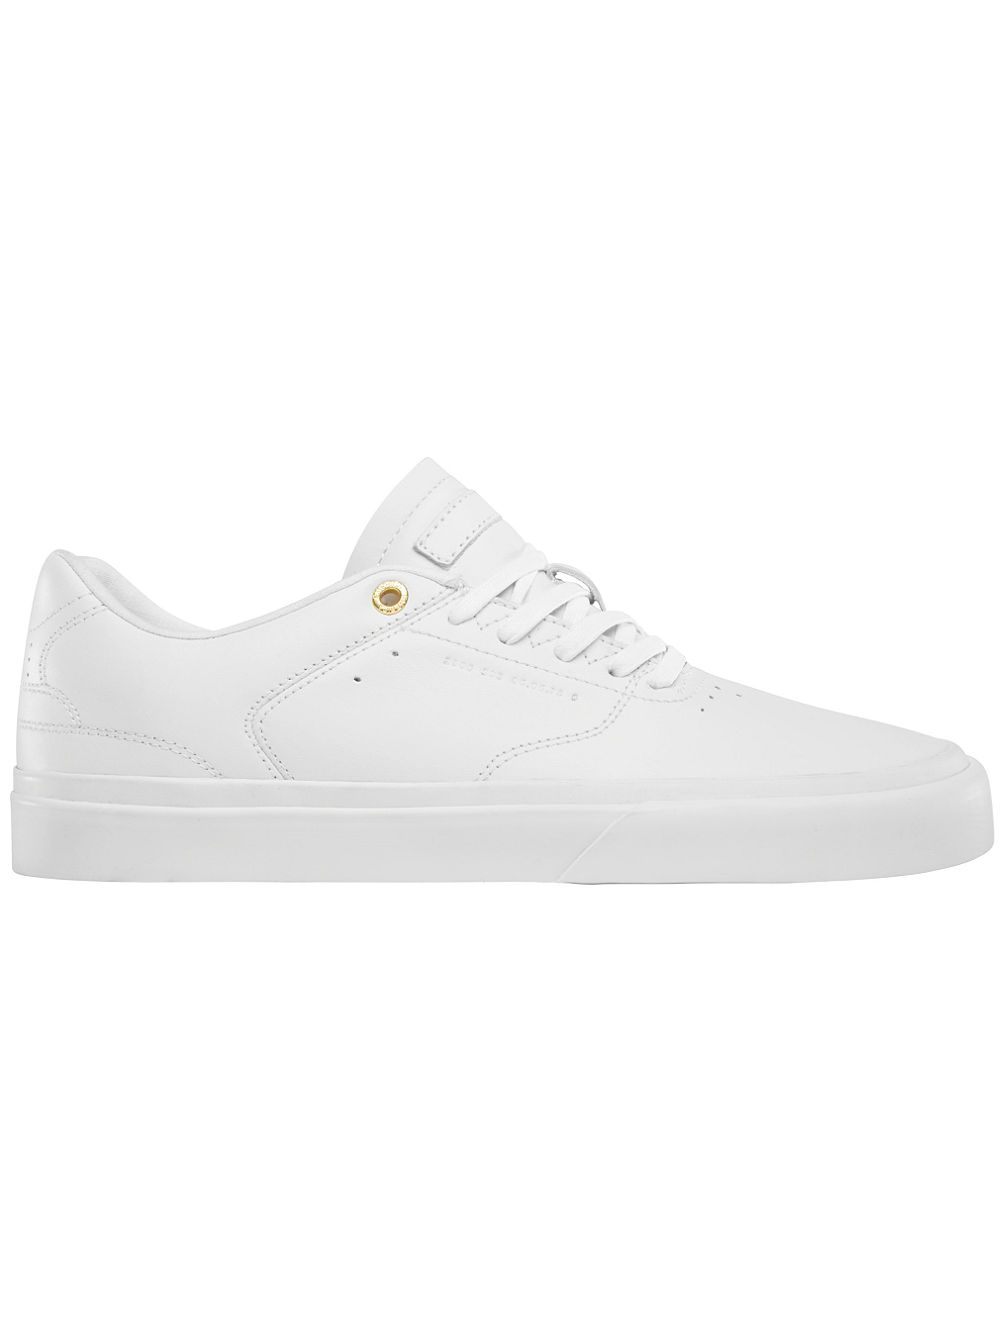 Rlv Reserve Skate Shoes